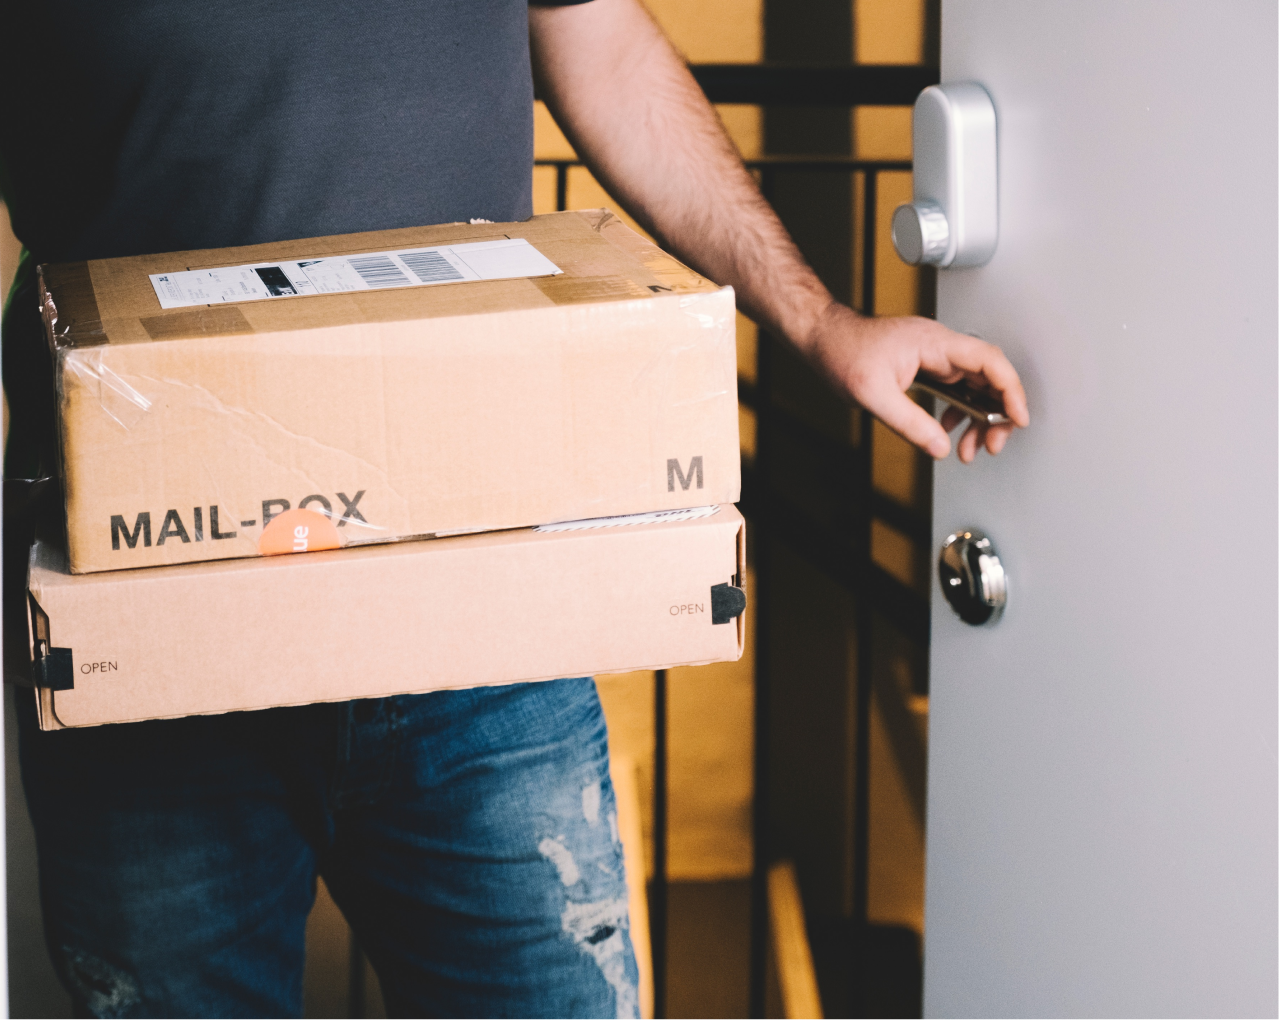 Glue & Bring | The Future of Delivery With Smart Locks